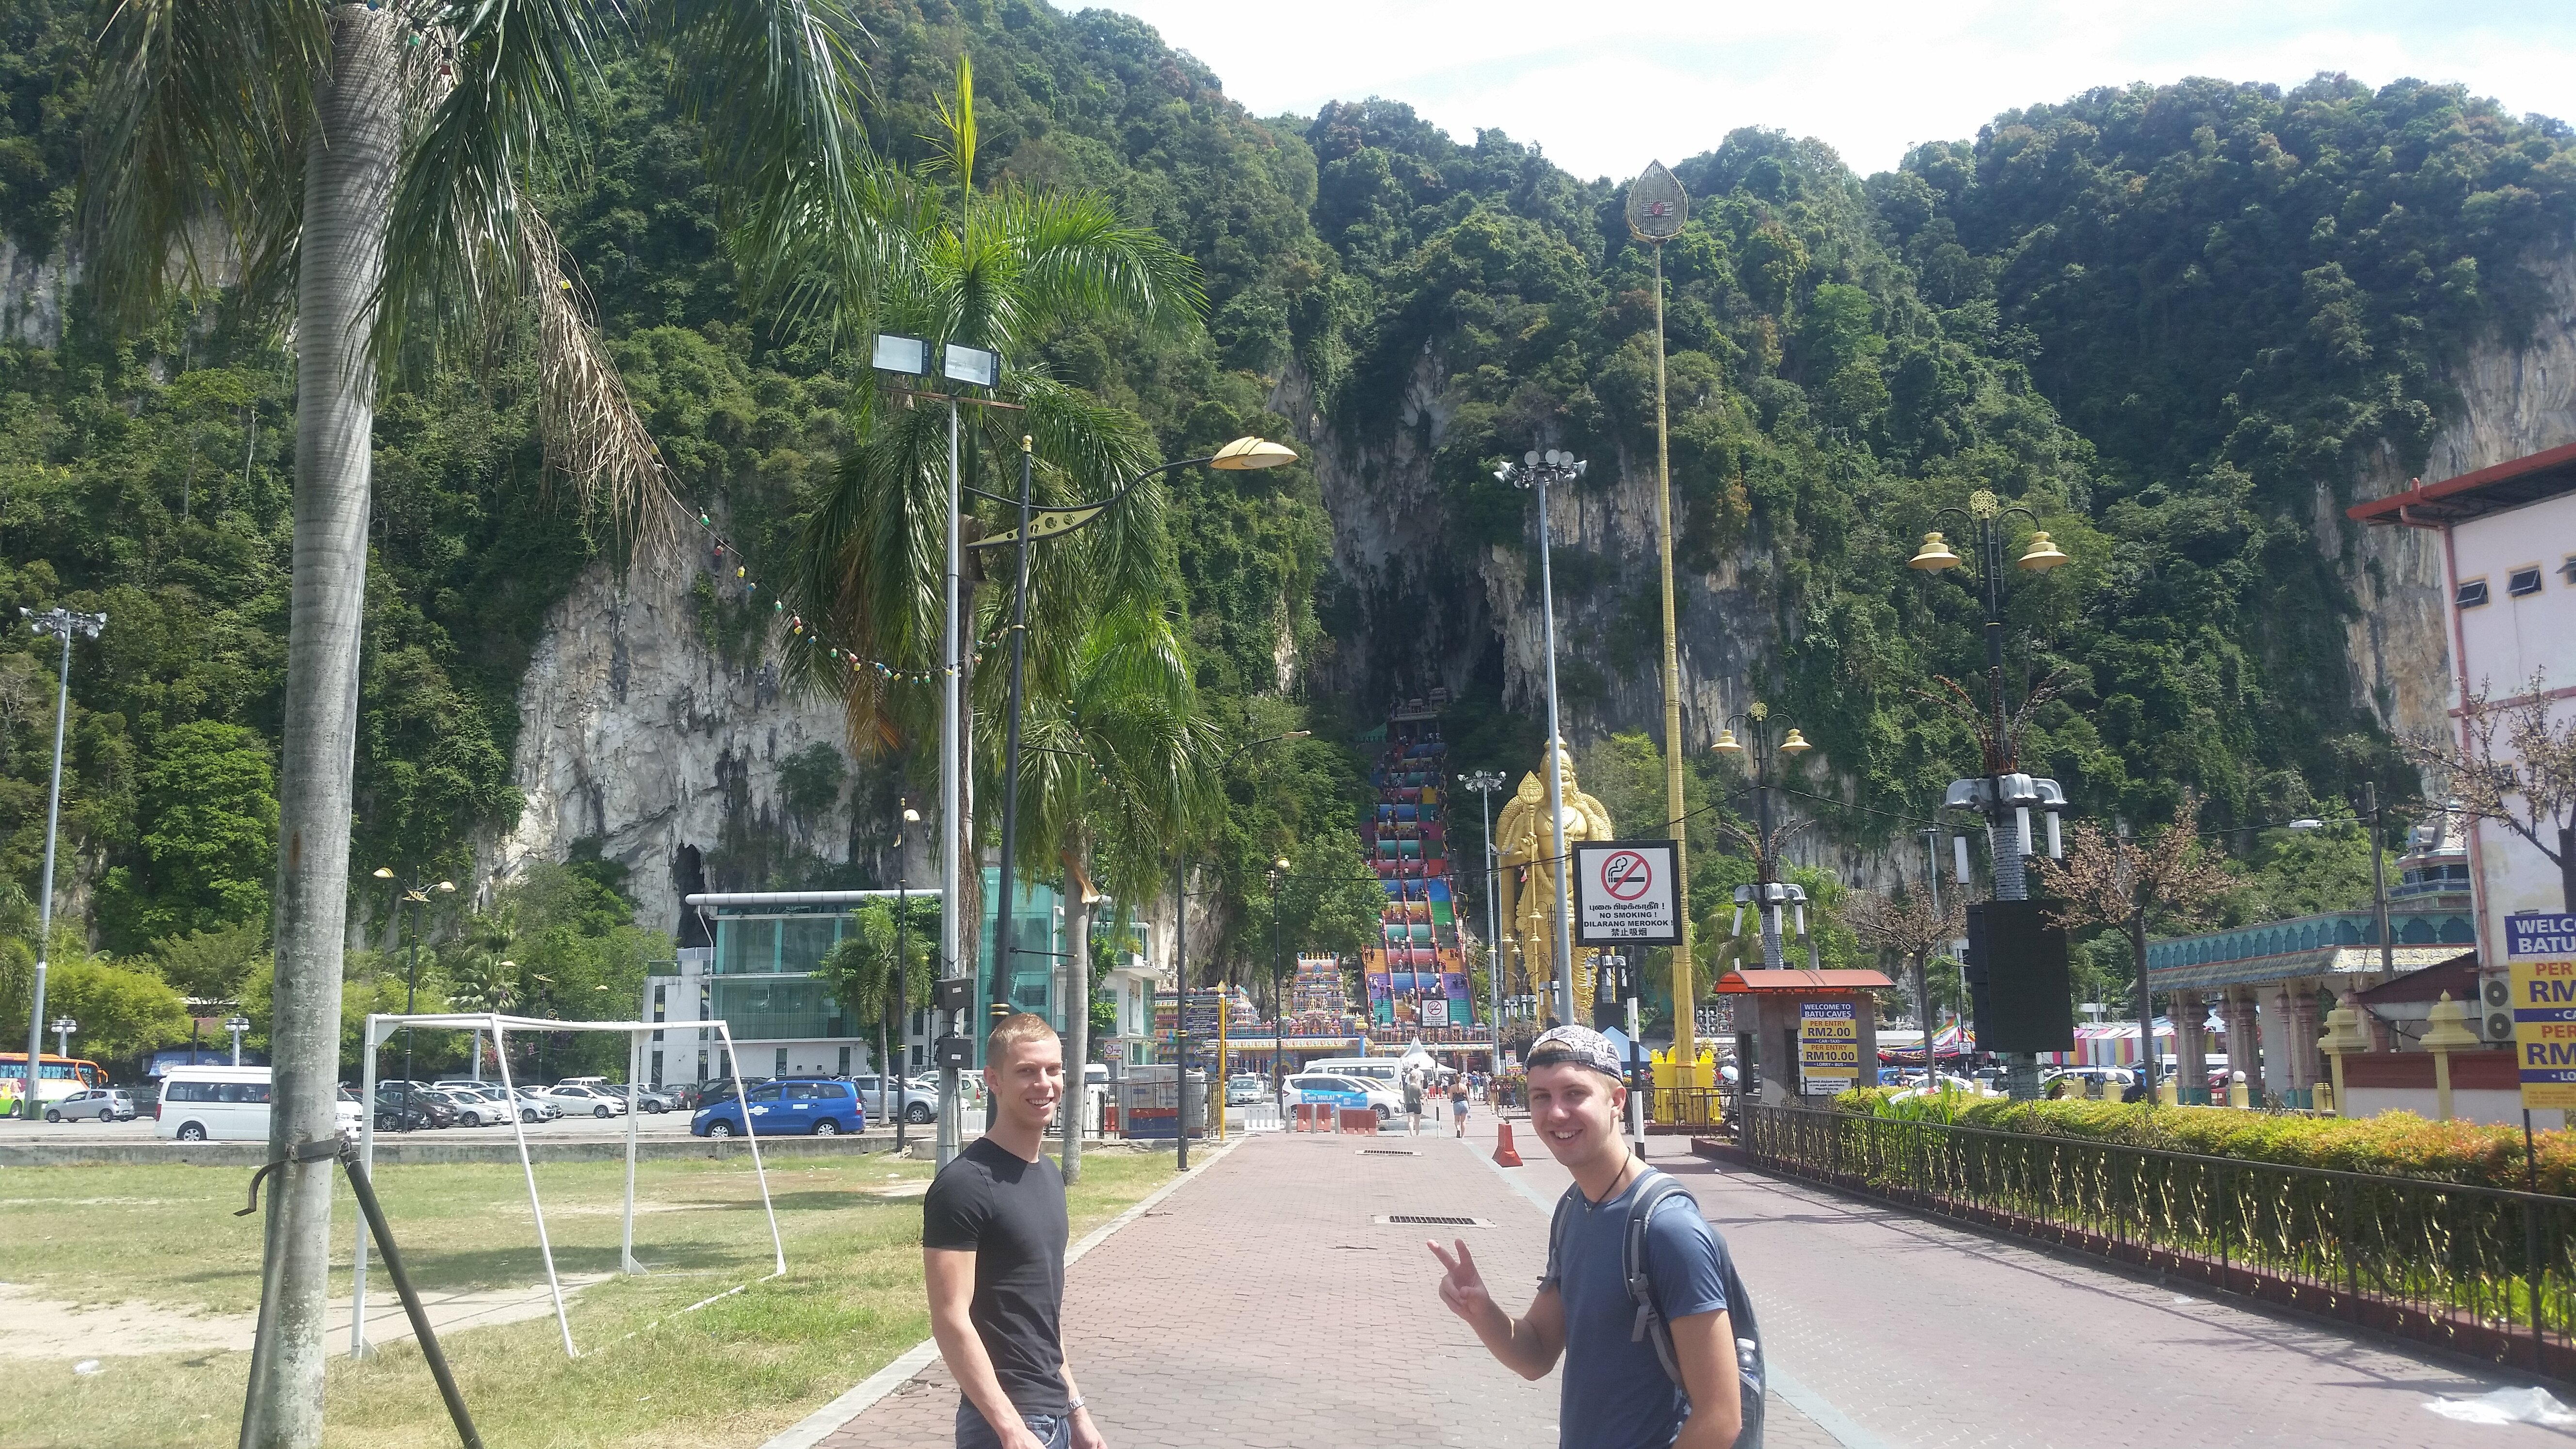 We arrive at Batu Caves.